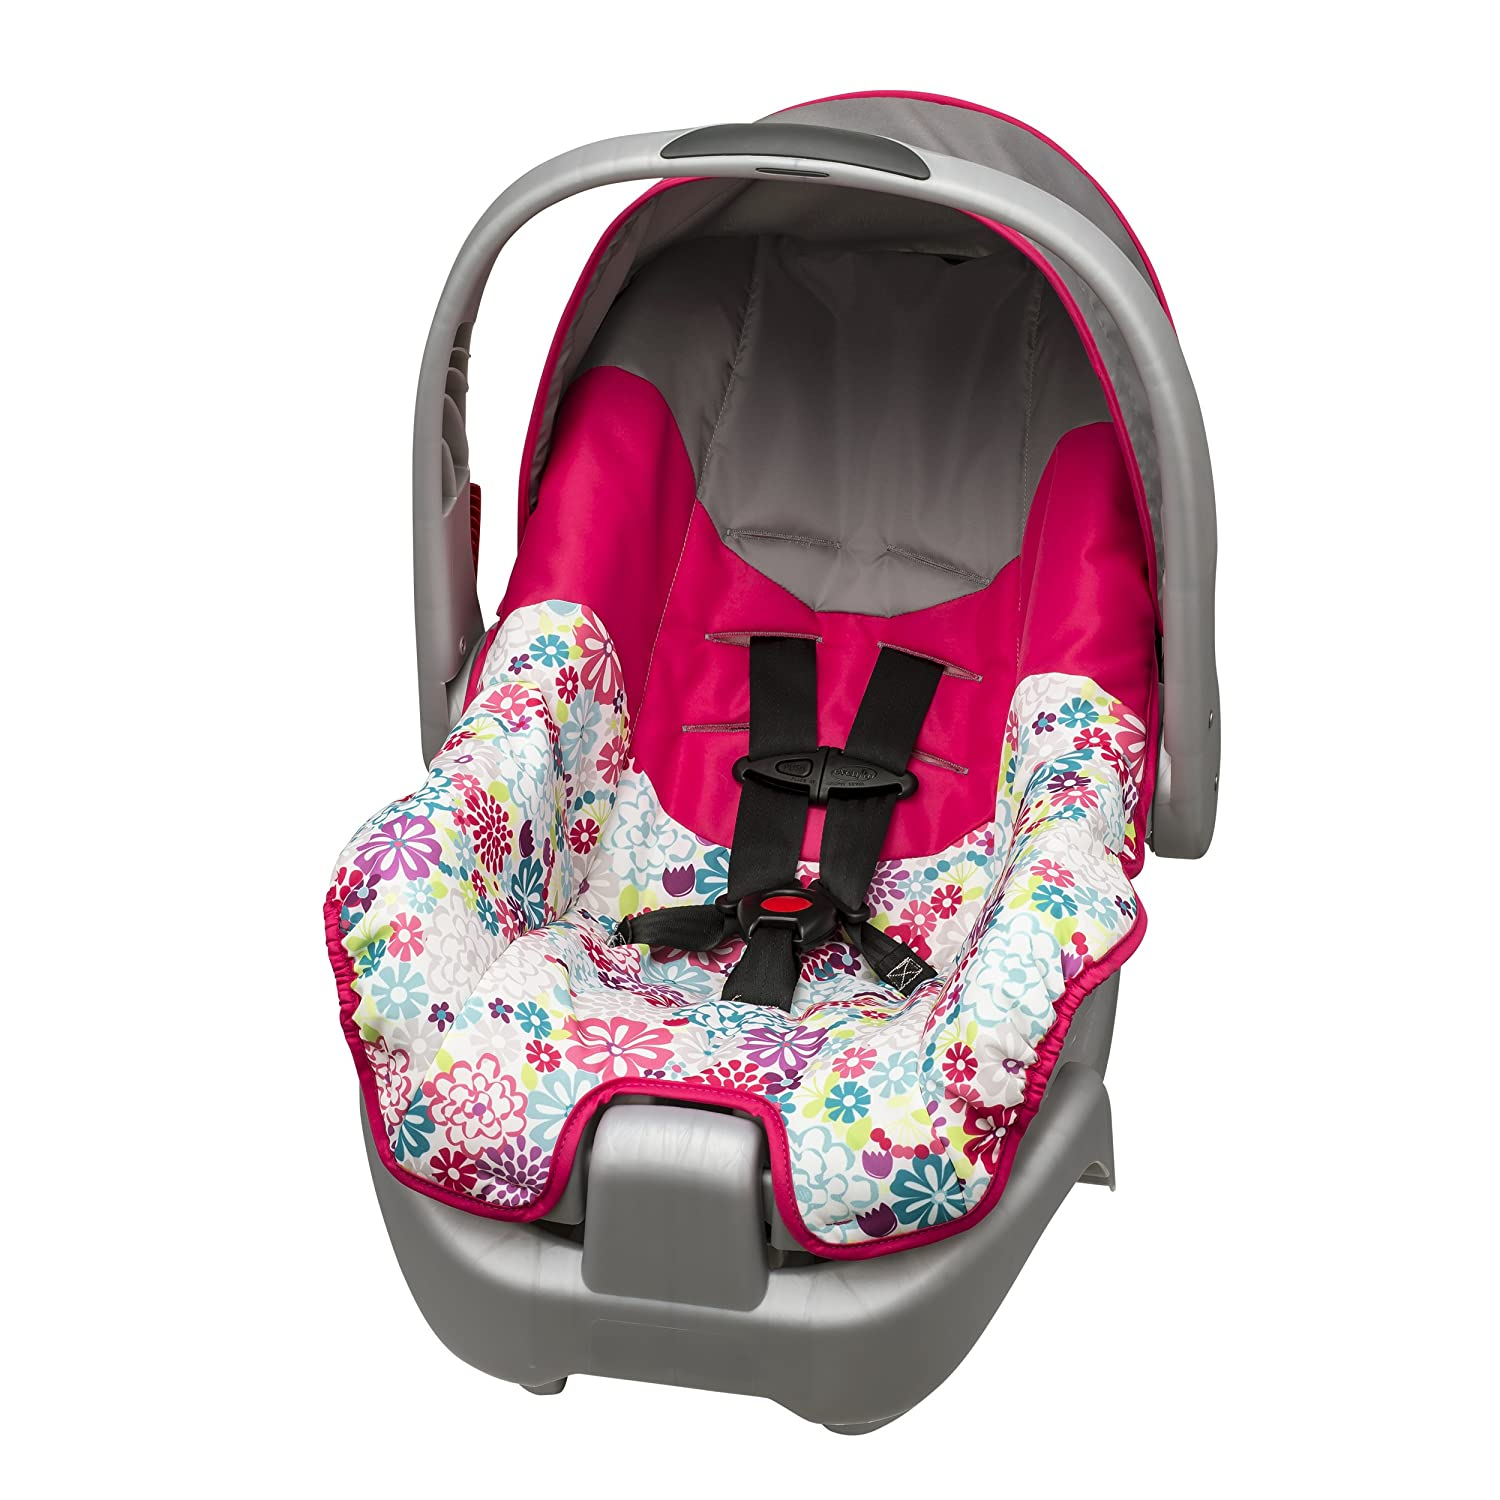 Evenflo Nurture Infant Car Seat, Pink Bloom 36212070